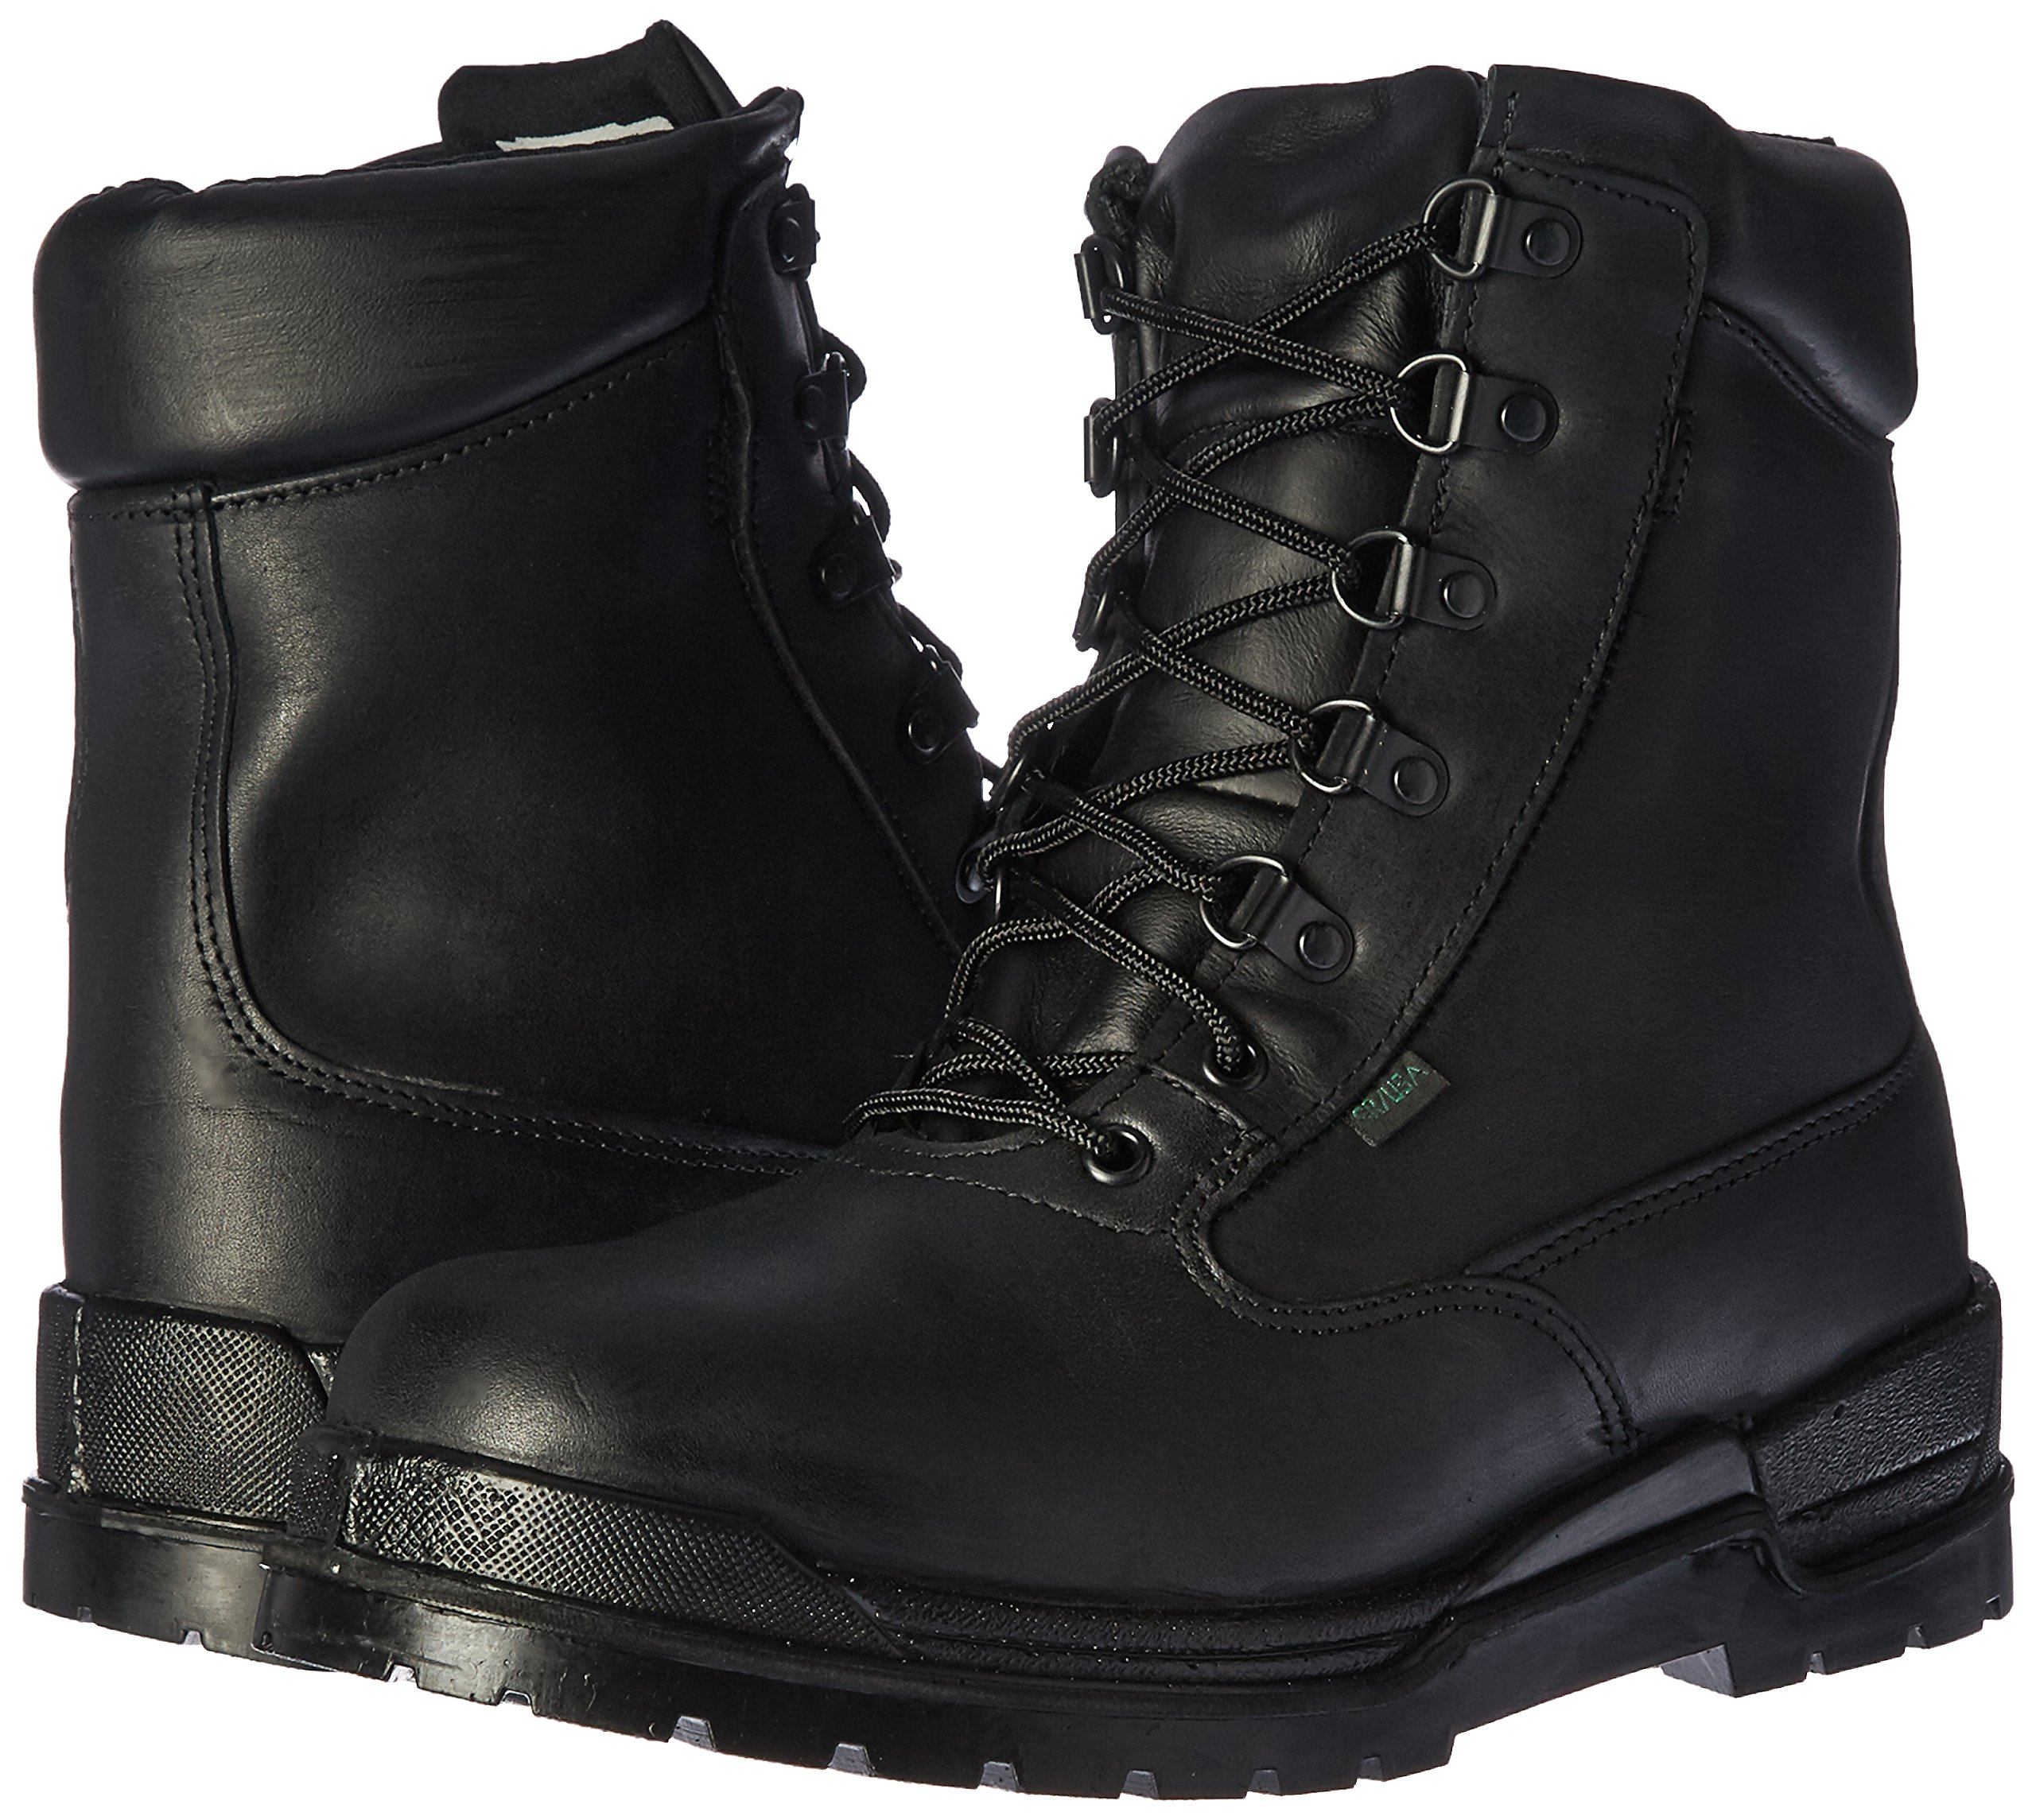 Rocky Men's 6 Inch Postal 8132-1 Slip Resistant Work Boot,Black,12 XW US by Rocky (Image #6)